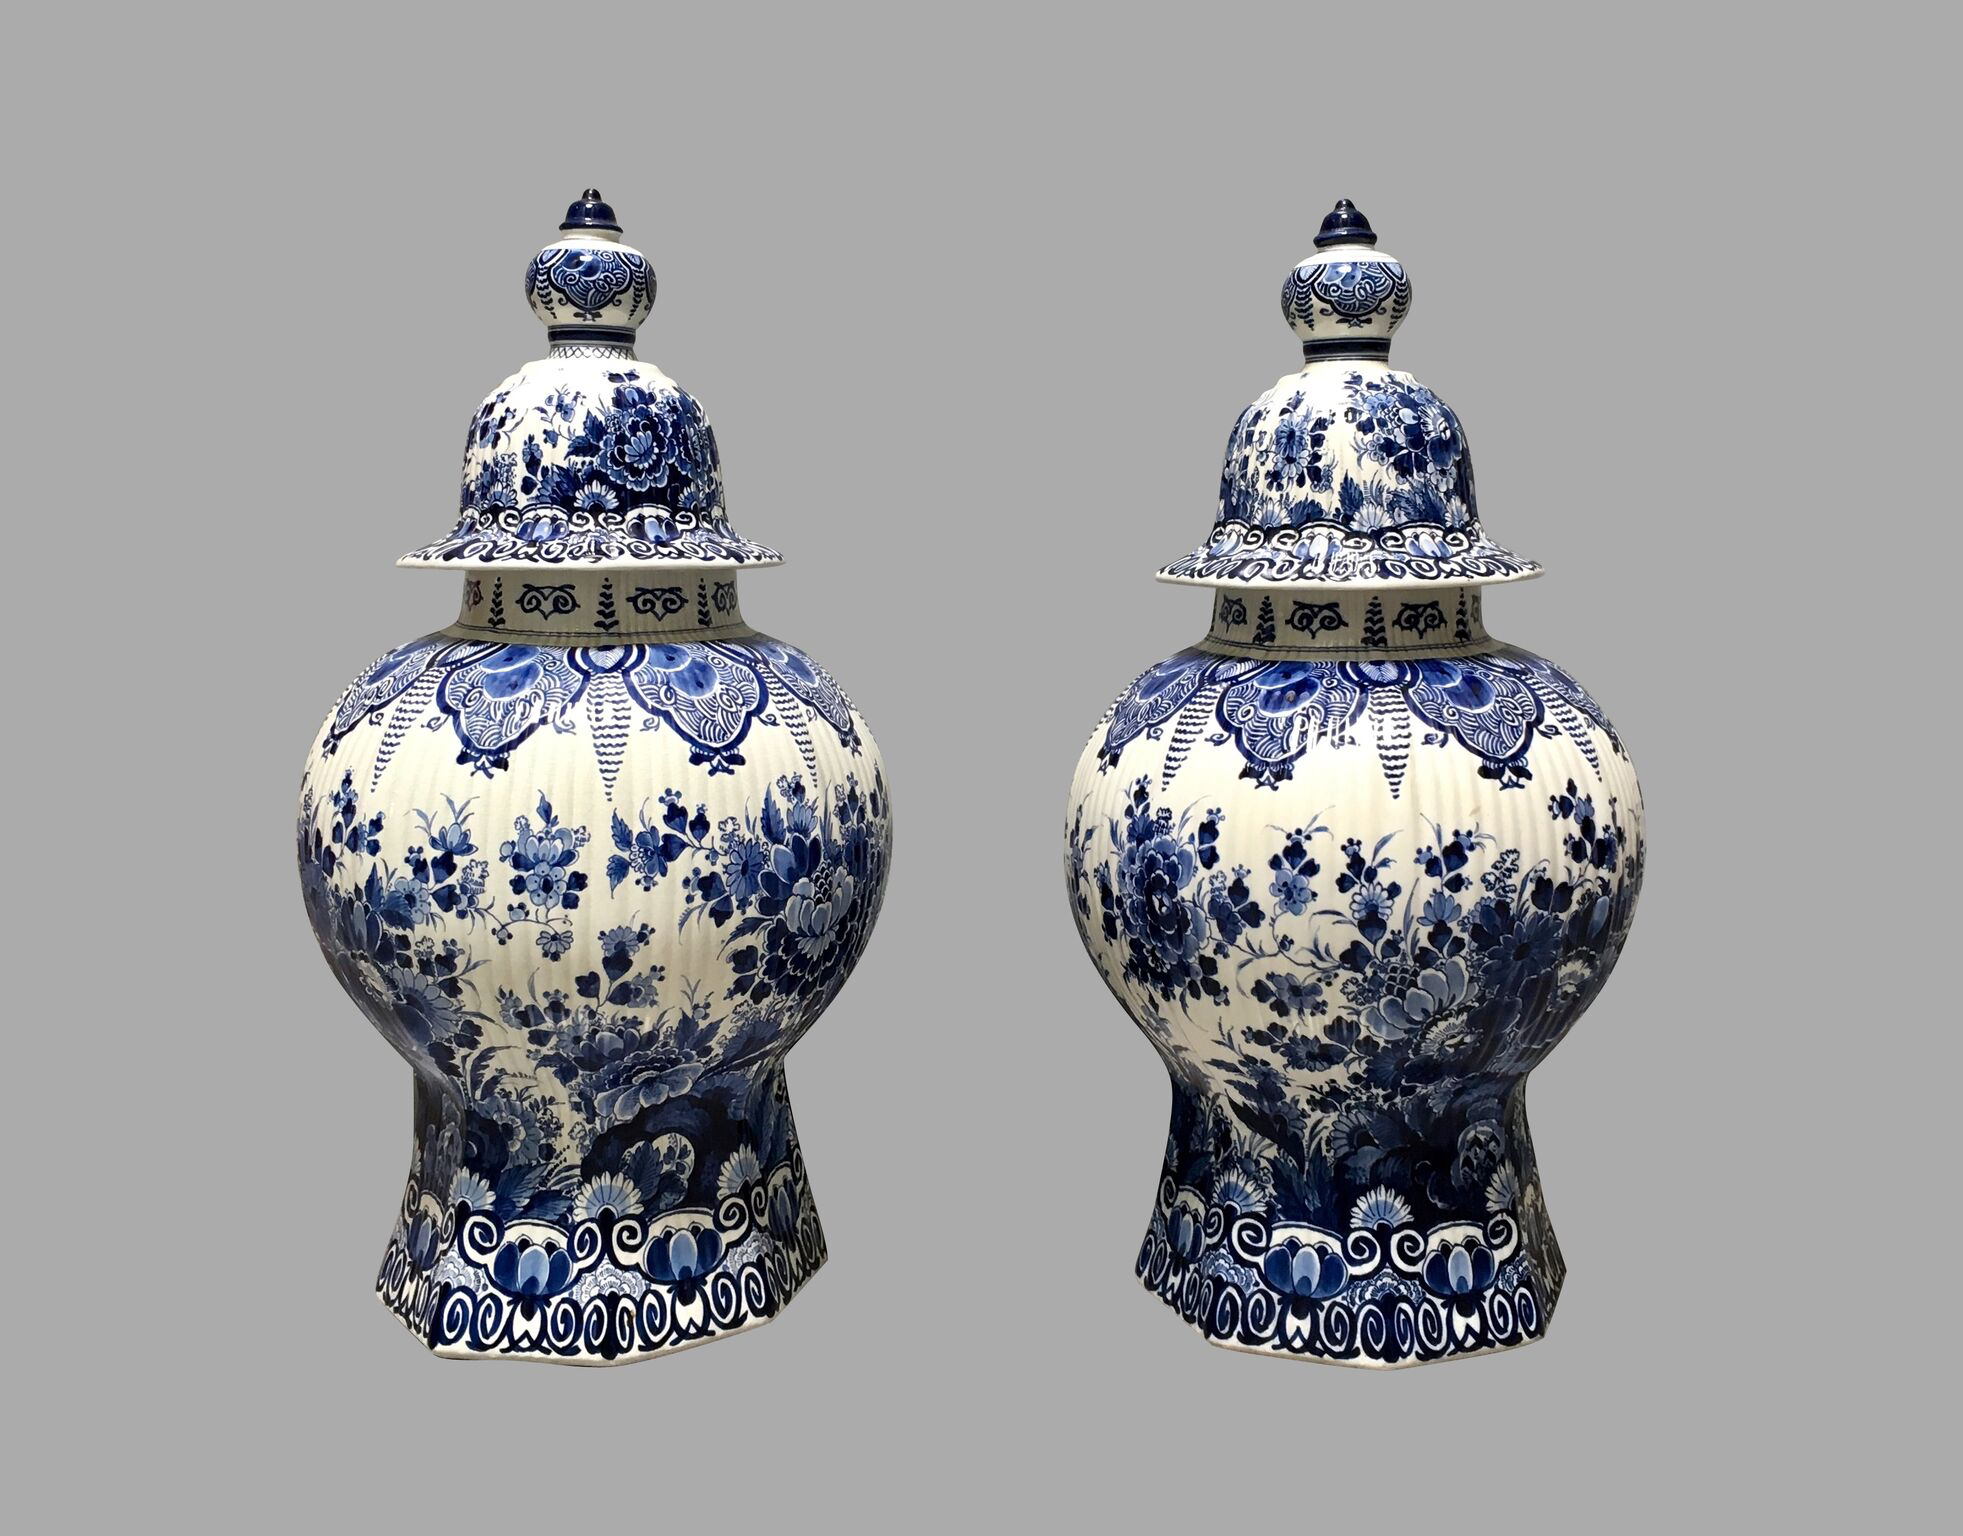 Pair of Dutch Delft Blue and White Covered Vases of Large-Scale | DANIEL STEIN Antiques San Francisco CA